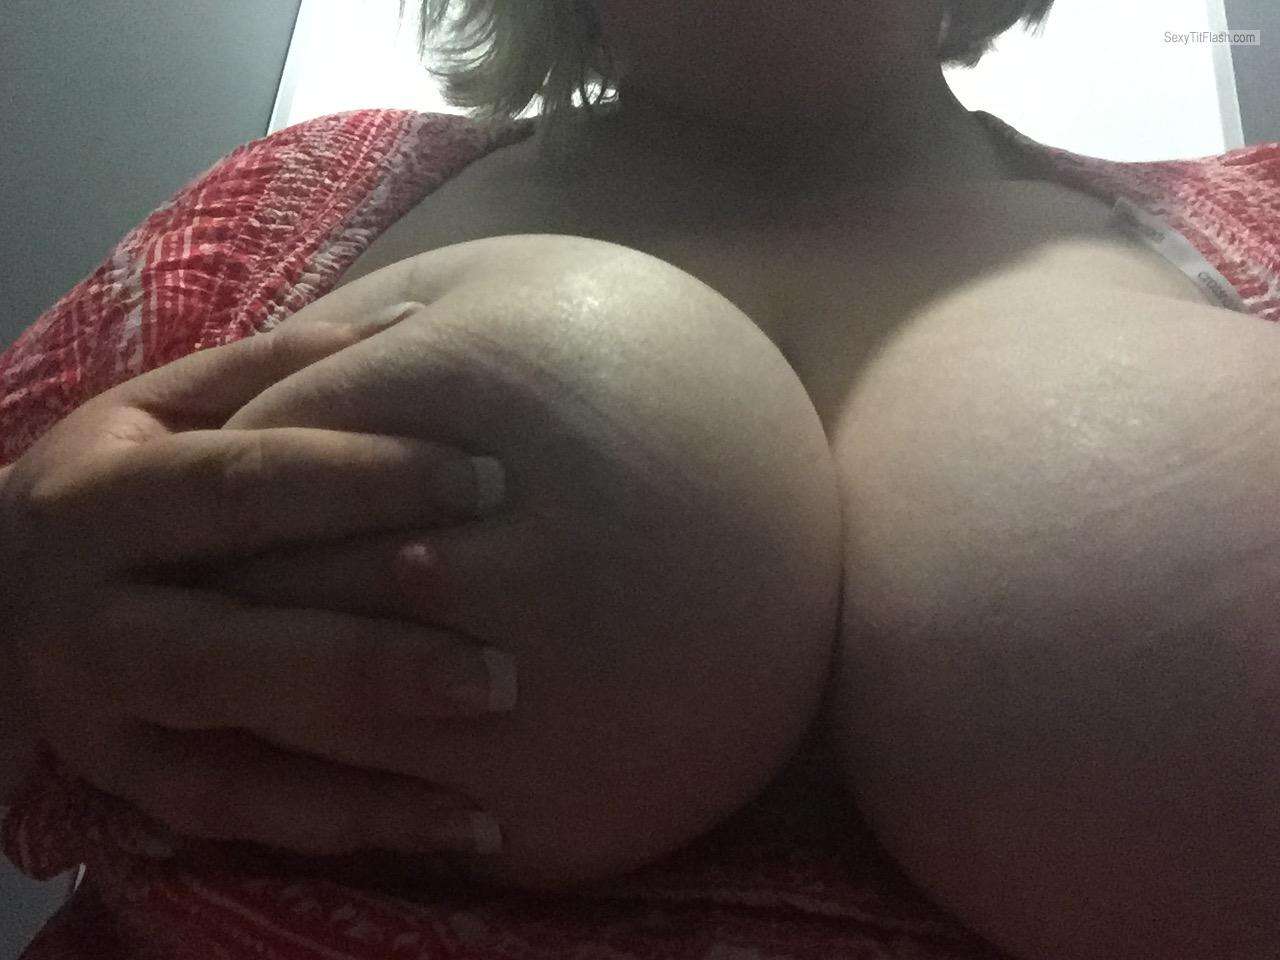 Tit Flash: My Big Tits - Juicy Titties For You from Australia